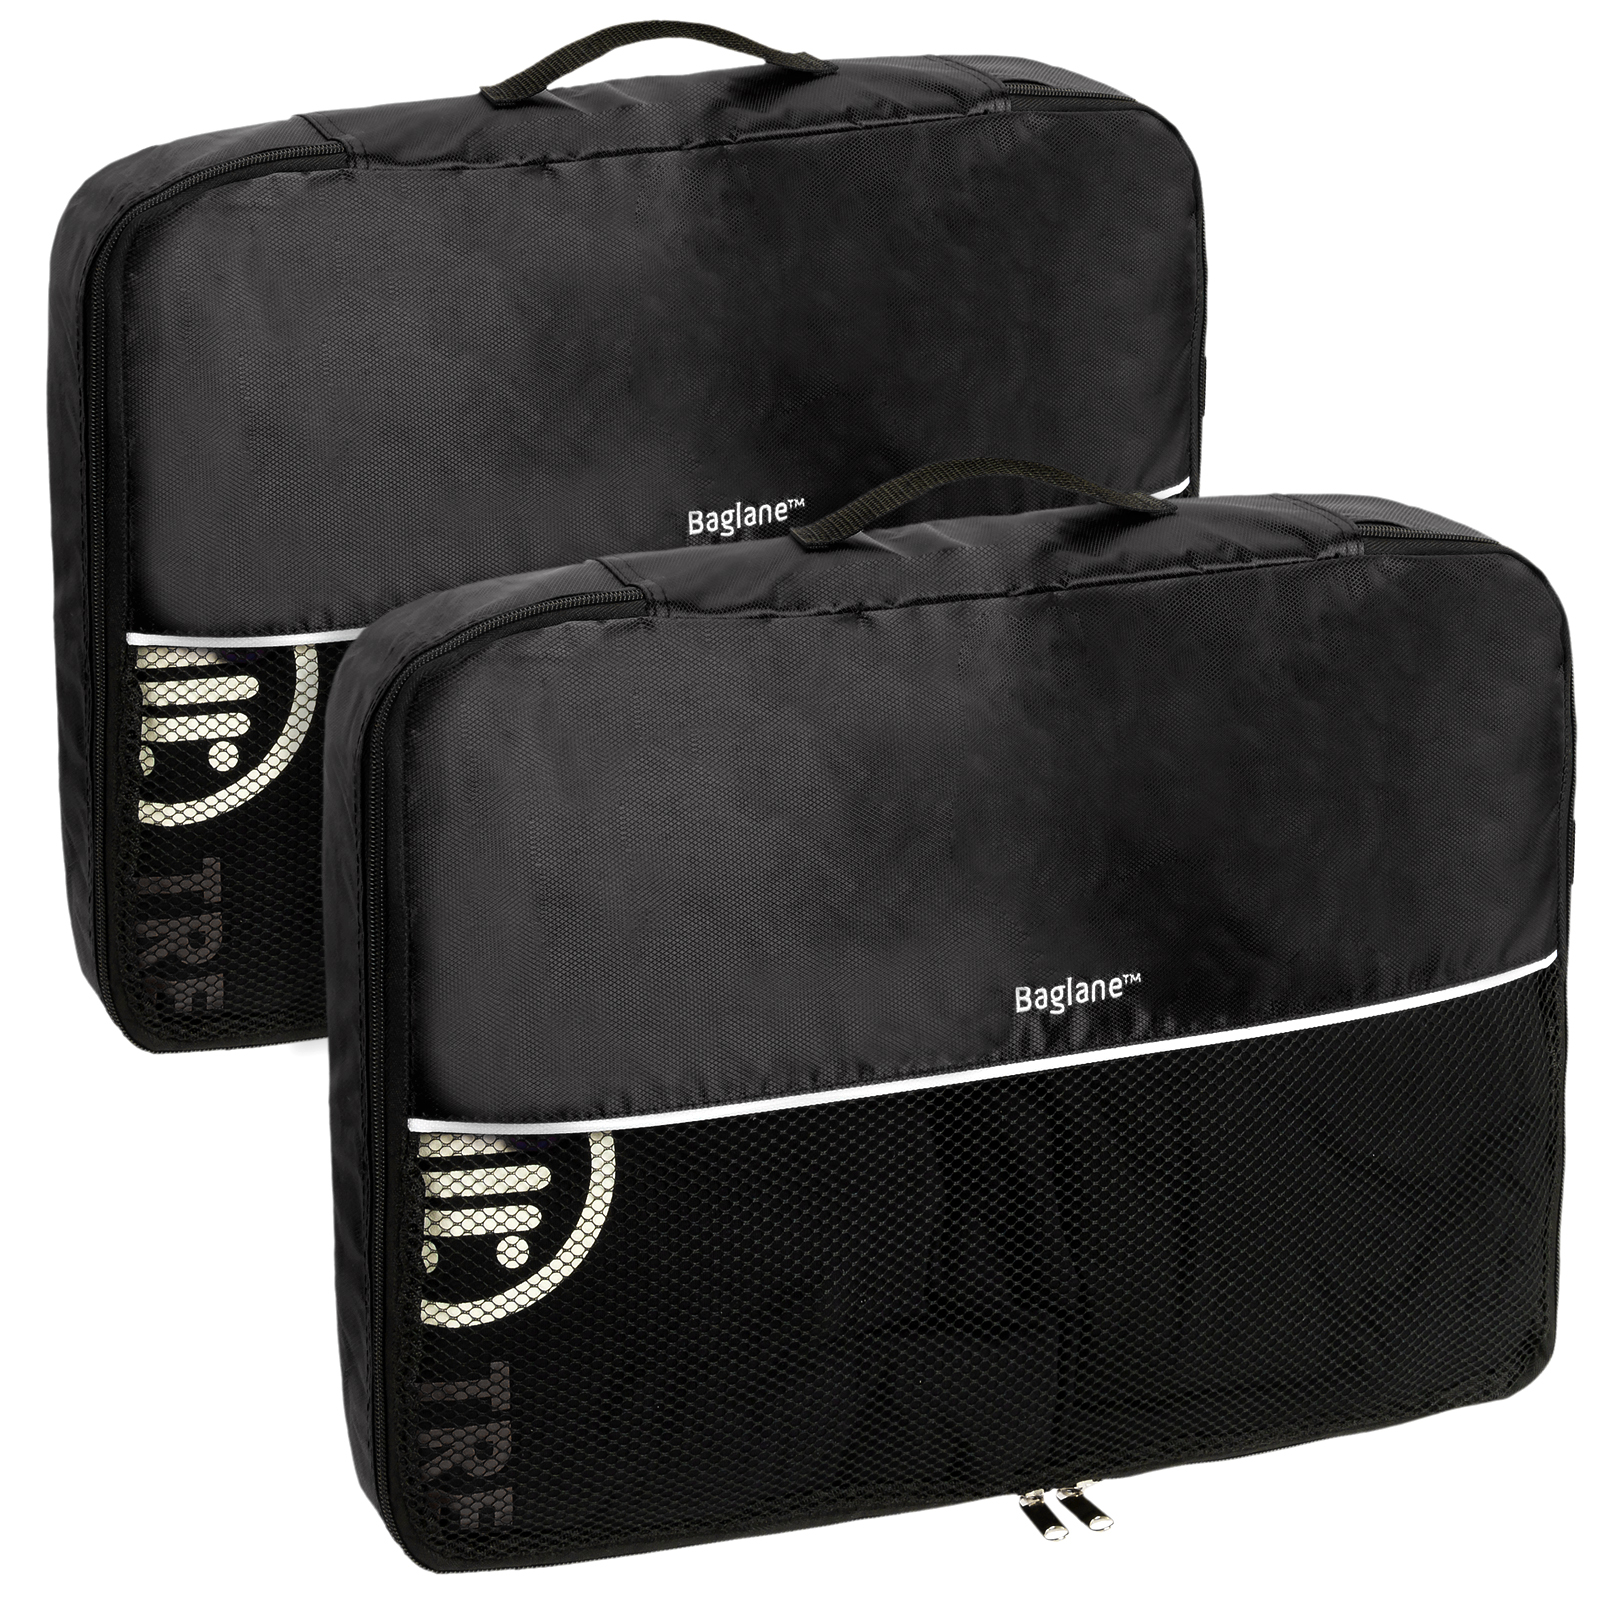 Baglane Black TechLife Nylon Luggage Travel Packing Cube Bags -2pc Set (Large)